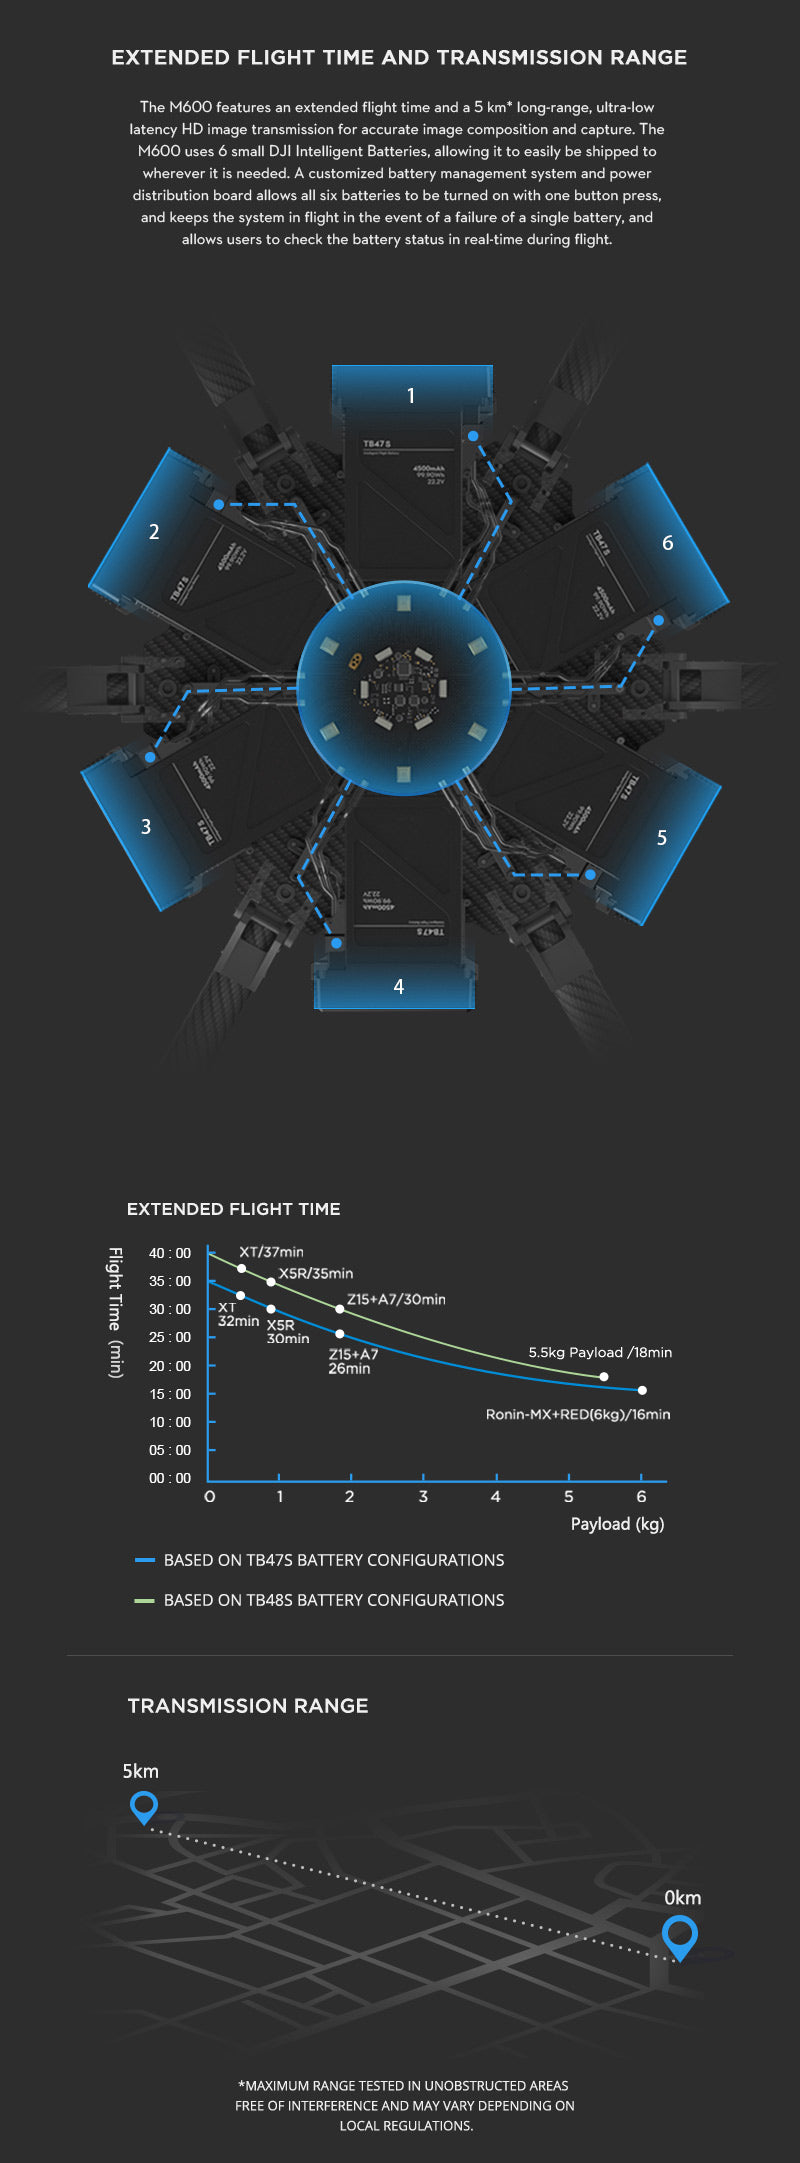 Extended Flight Times Matrice UAV 600